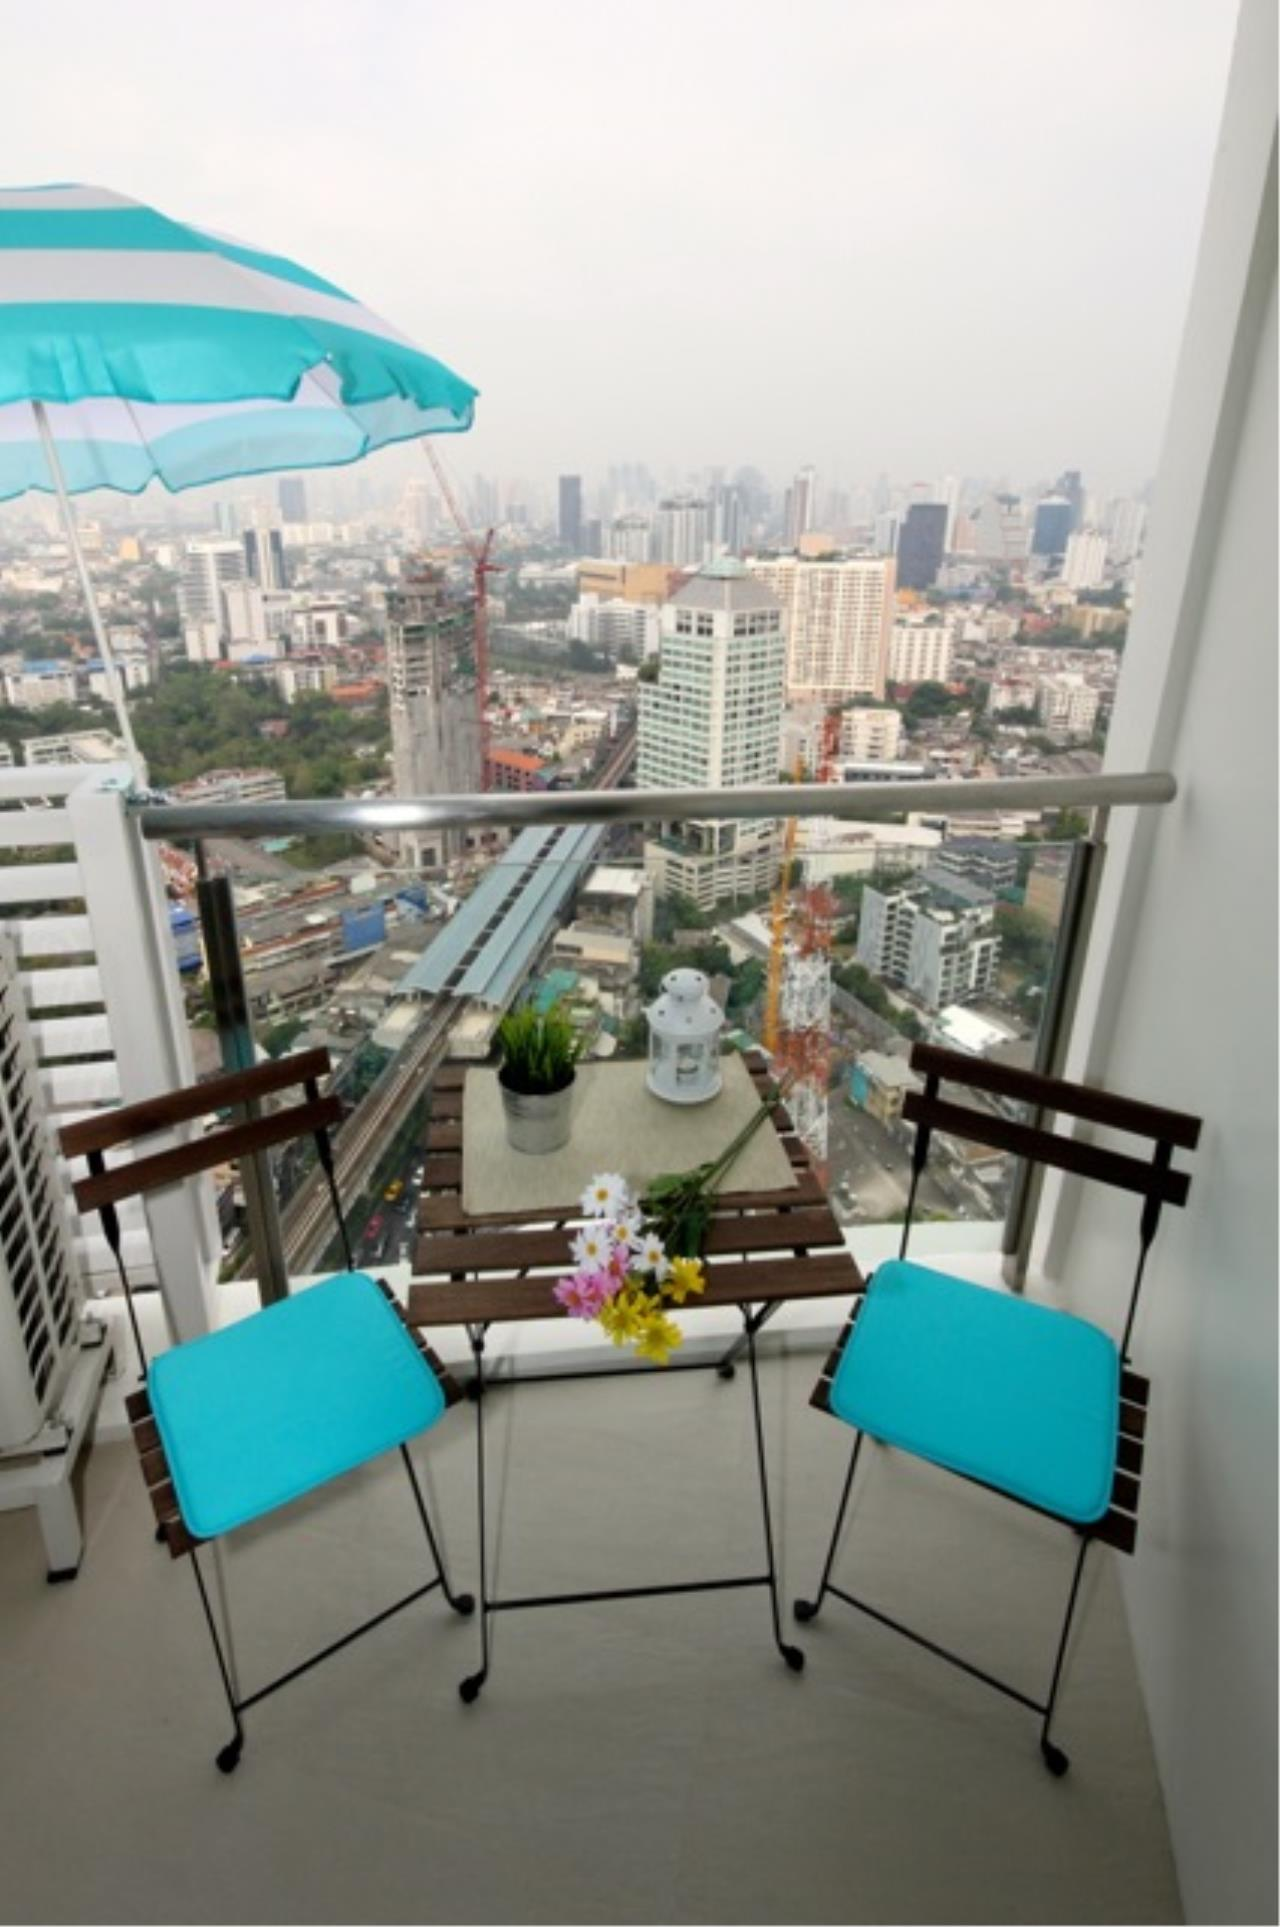 RE/MAX All Star Realty Agency's Skywalk Beautiful One Bed 58sqm rent 40k only (negotiable) 5